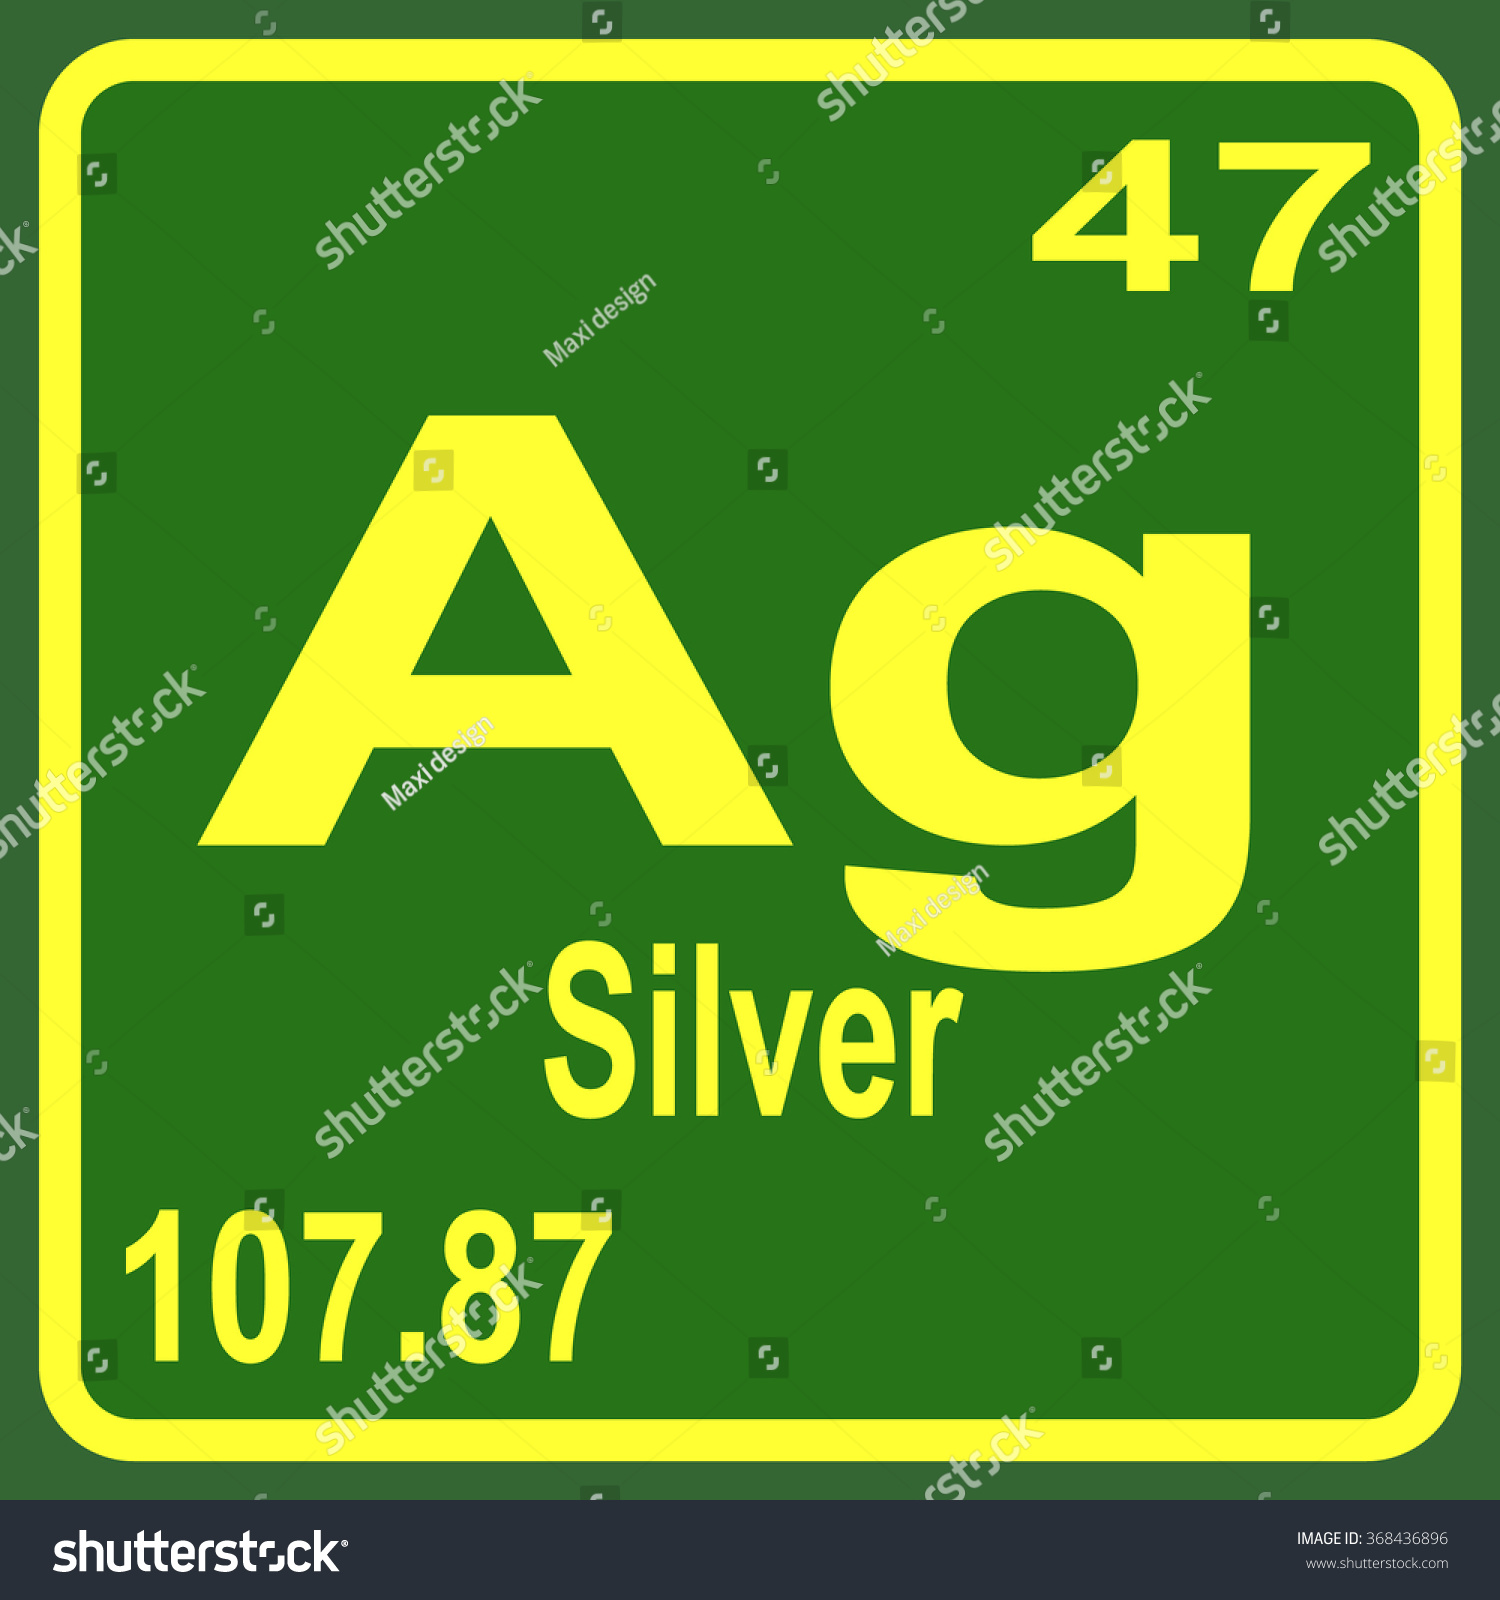 Periodic table of elements silver images periodic table images periodic table of elements silver gallery periodic table images periodic table of elements silver image collections gamestrikefo Choice Image